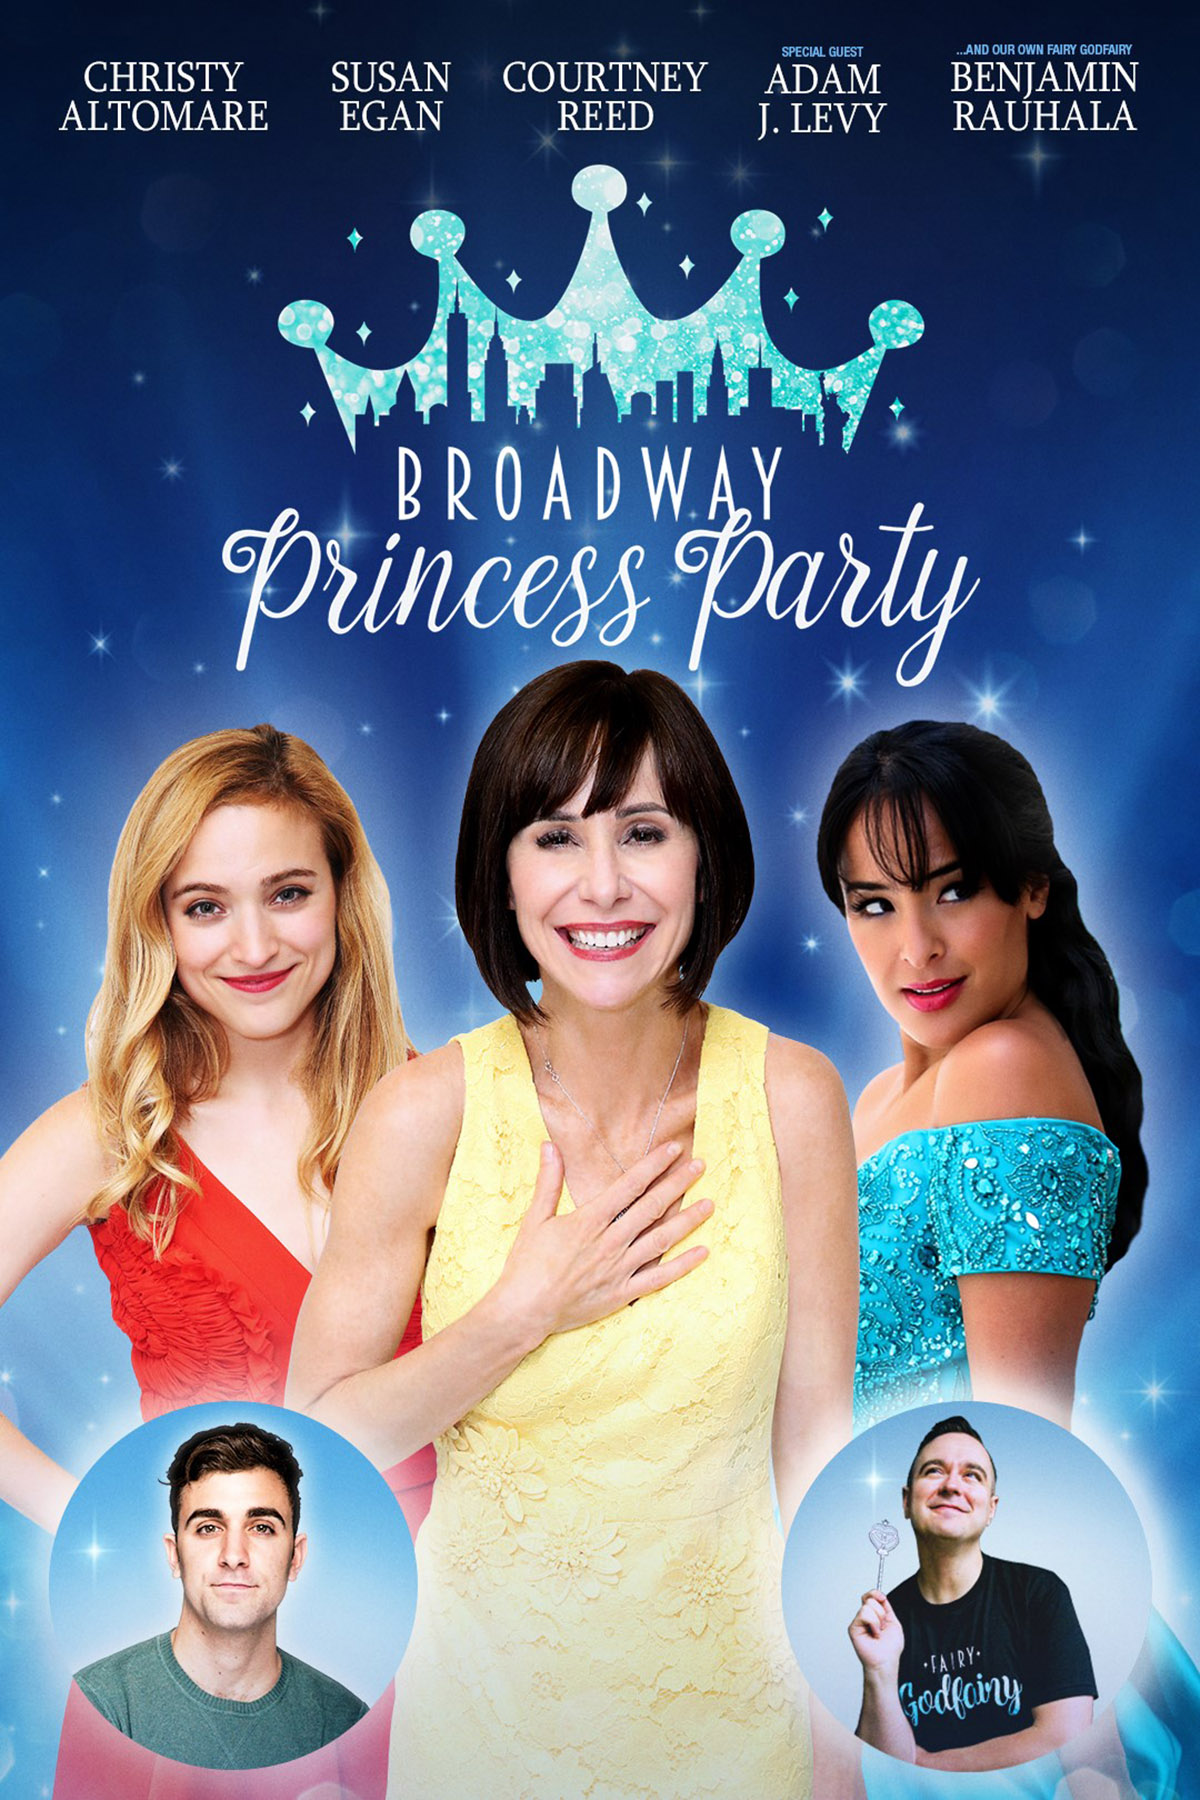 Cast of Broadway Princess Party